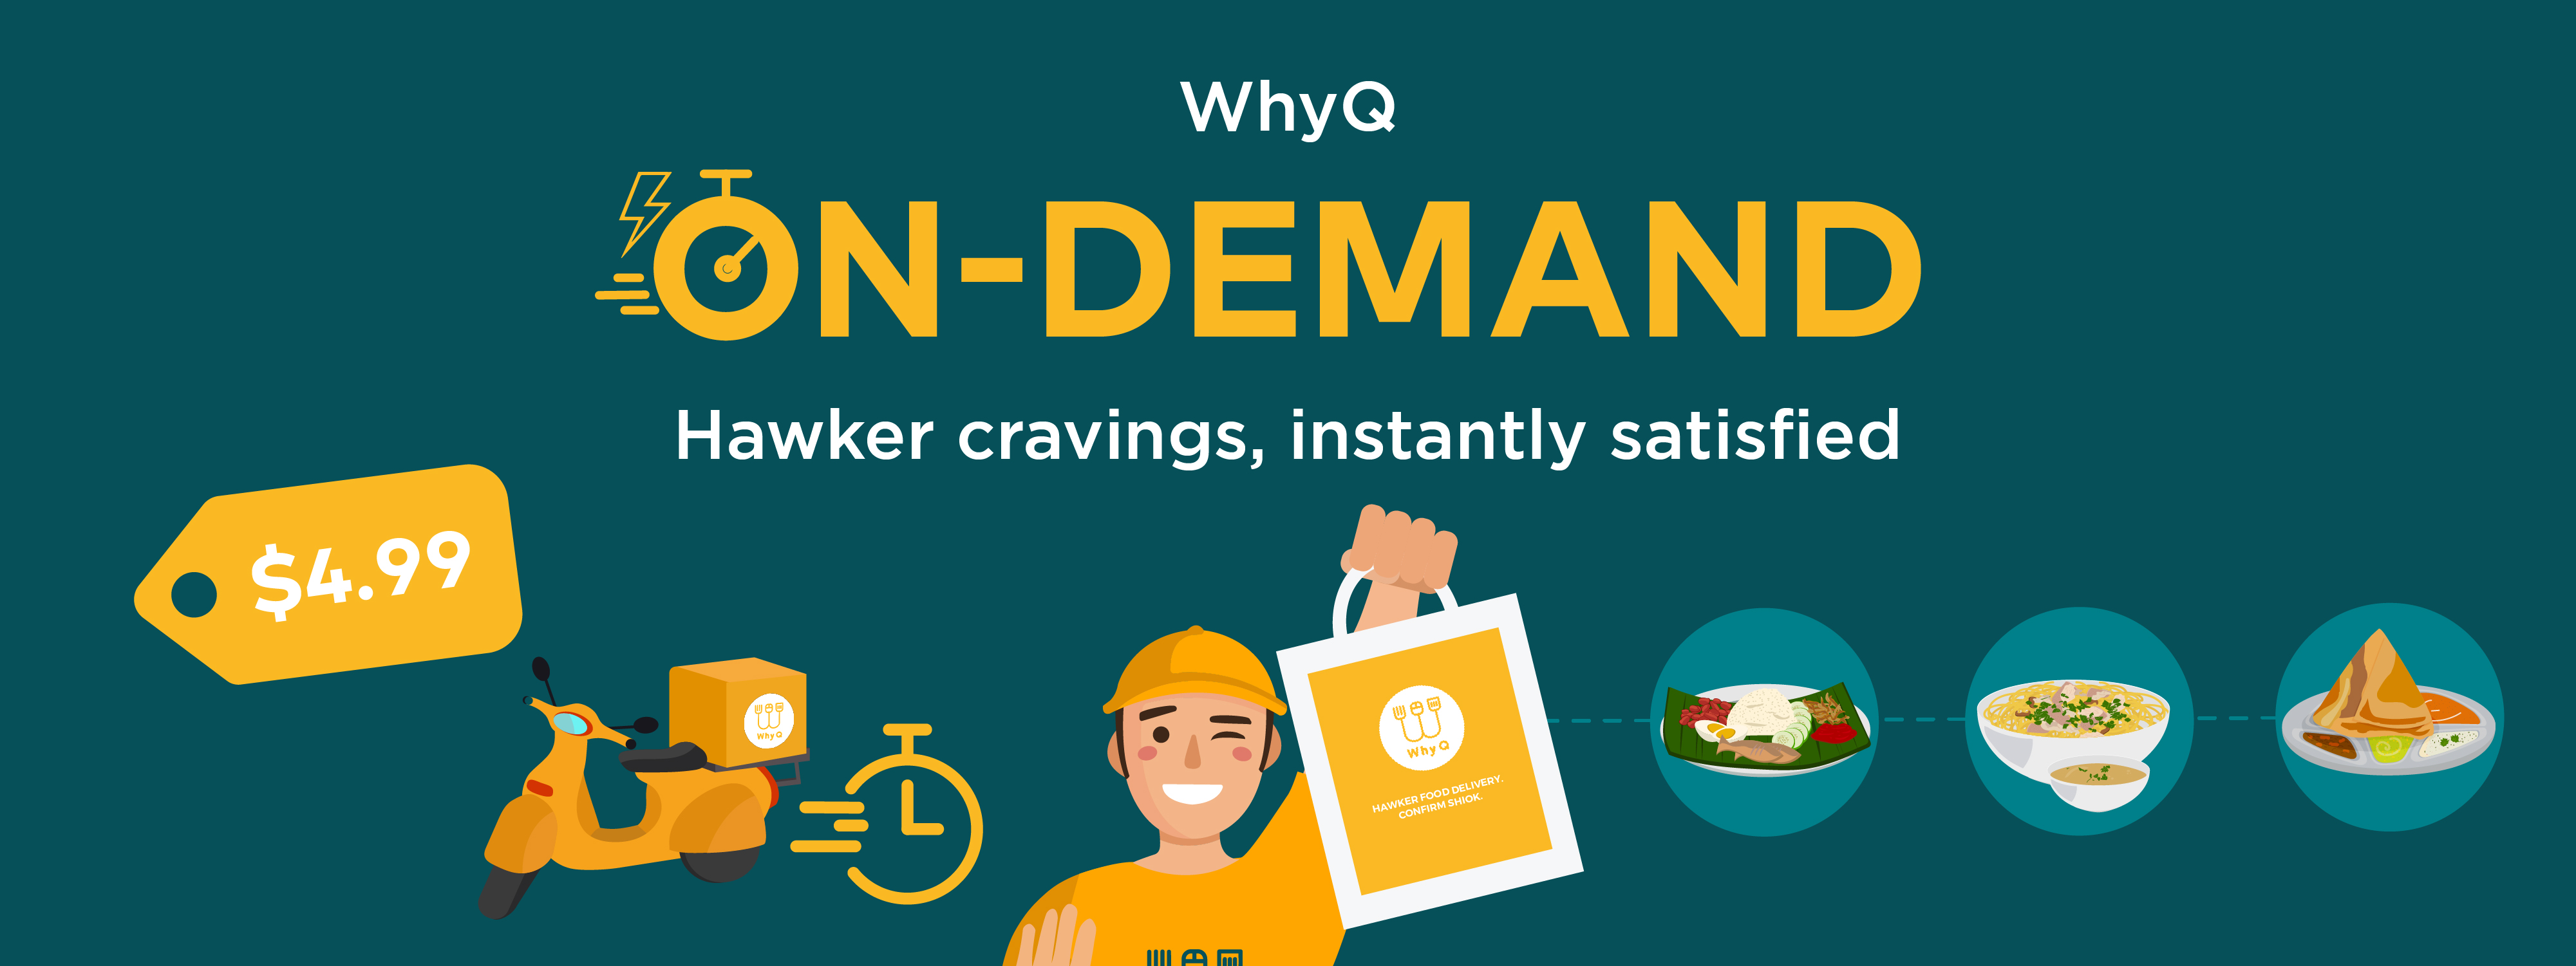 WhyQ On-demand. Hawker cravings, instantly satisfied.